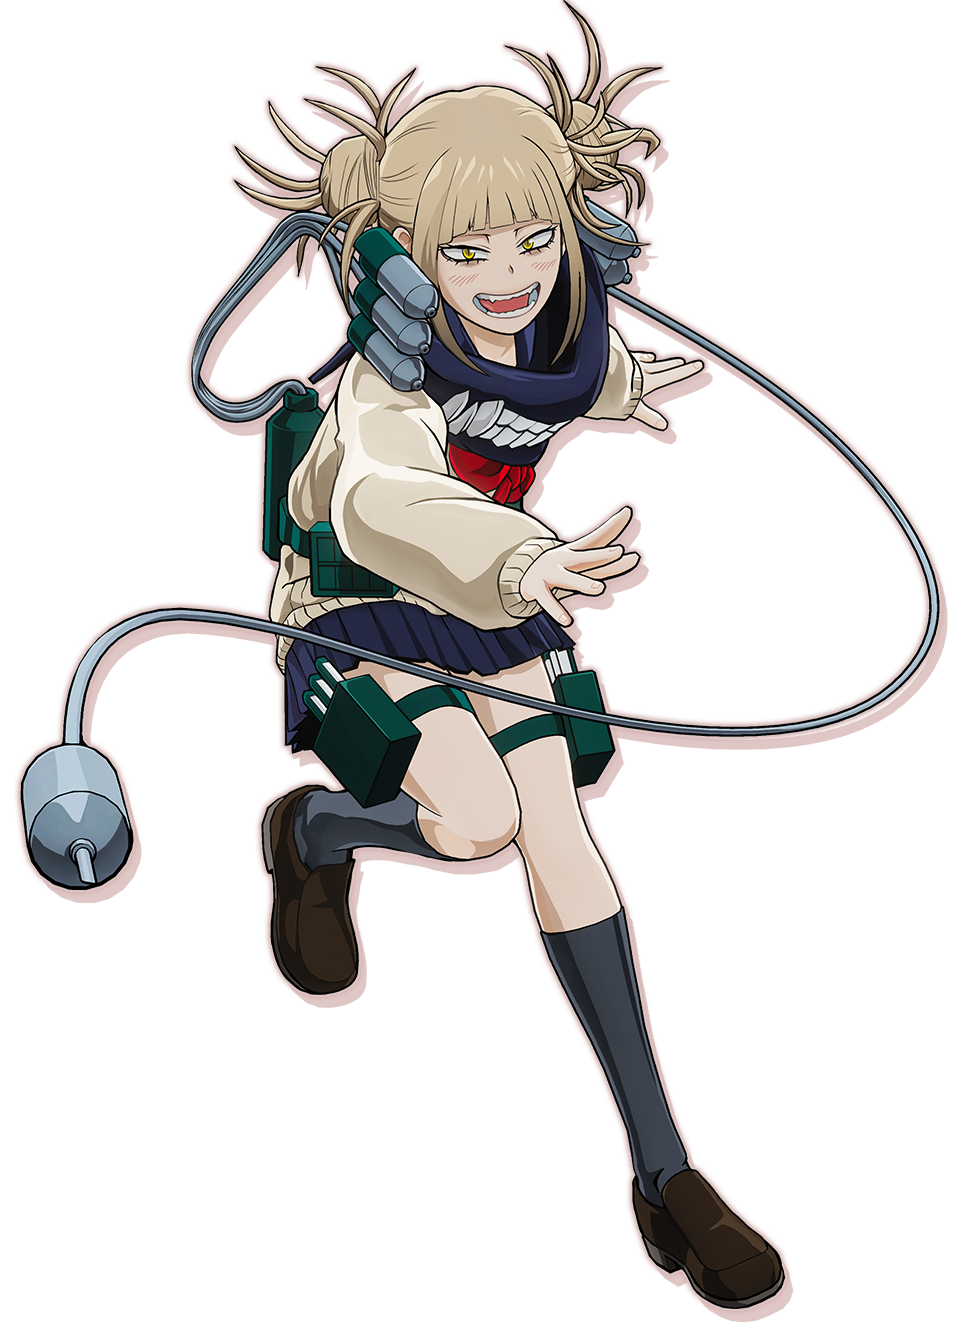 Himiko Toga Render (My Hero One's Justice 1).png